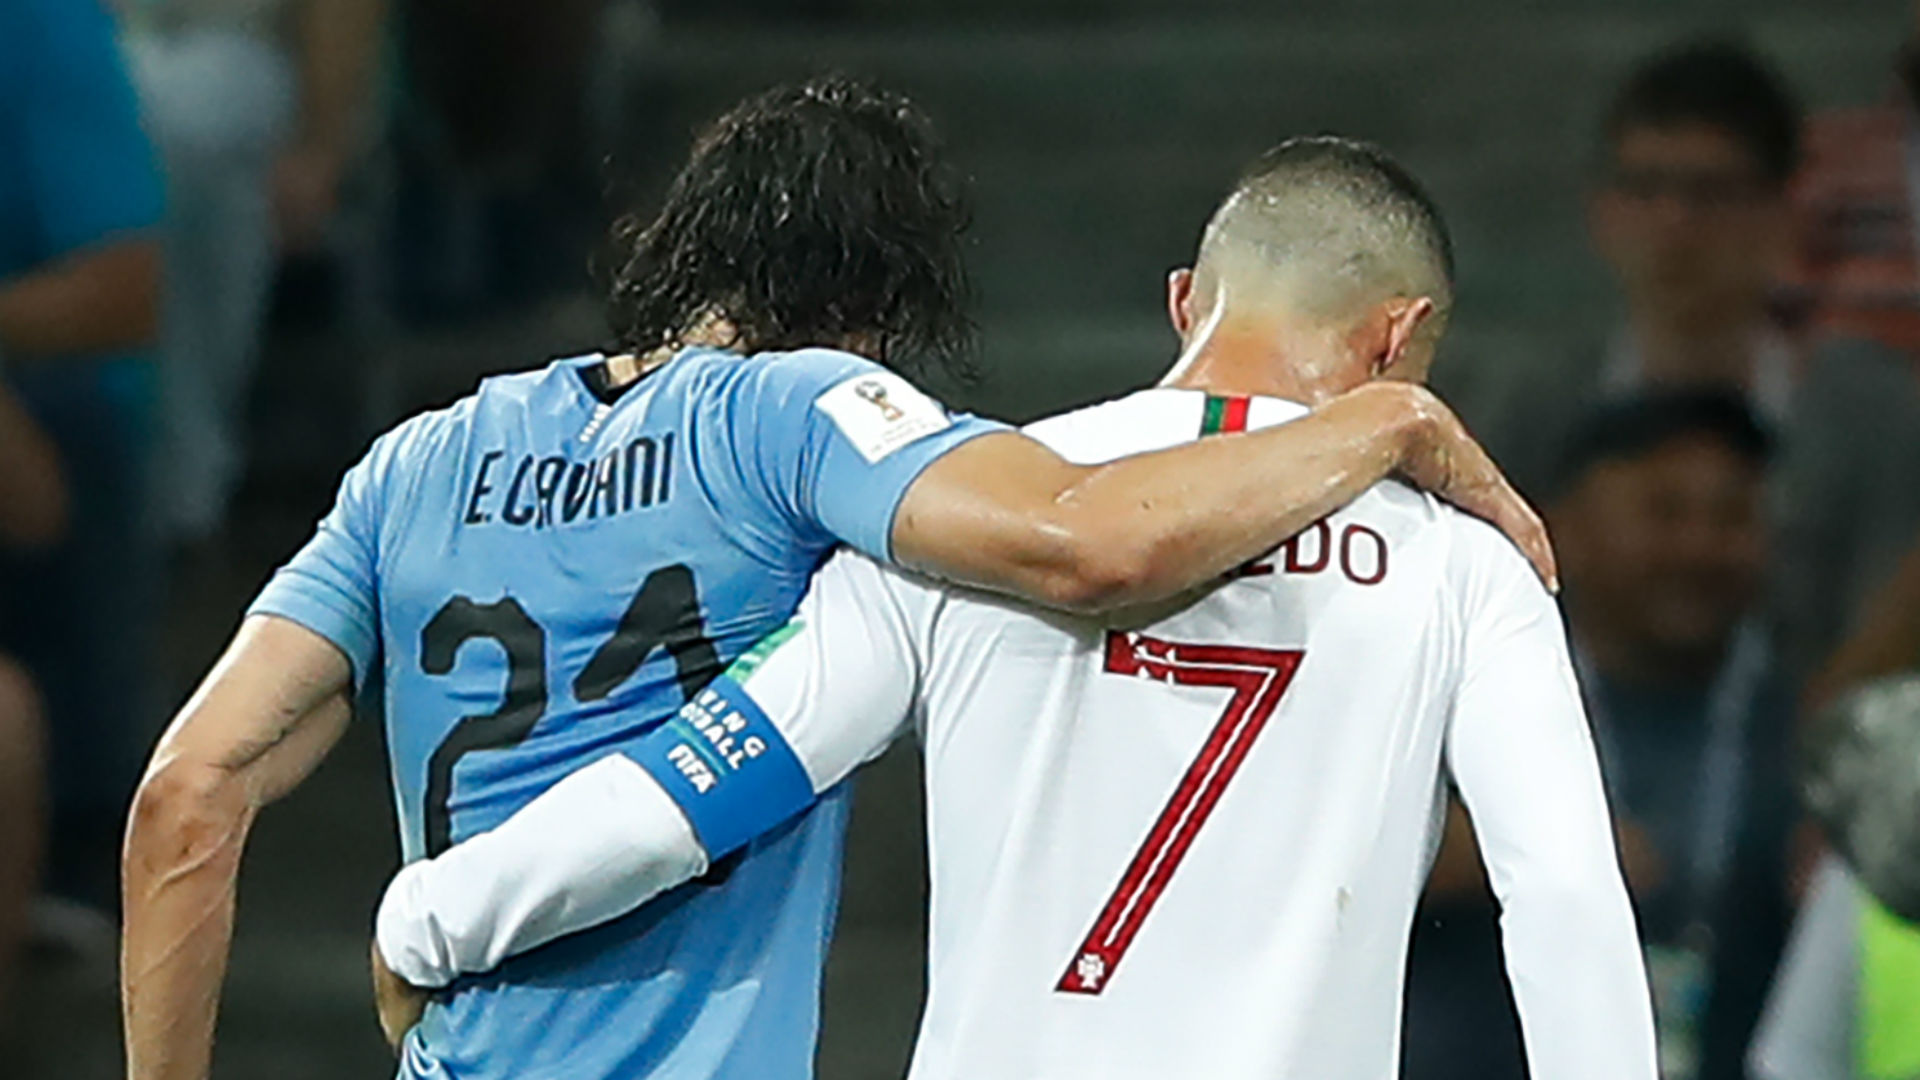 Ronaldo out of World Cup after loss to Uruguay